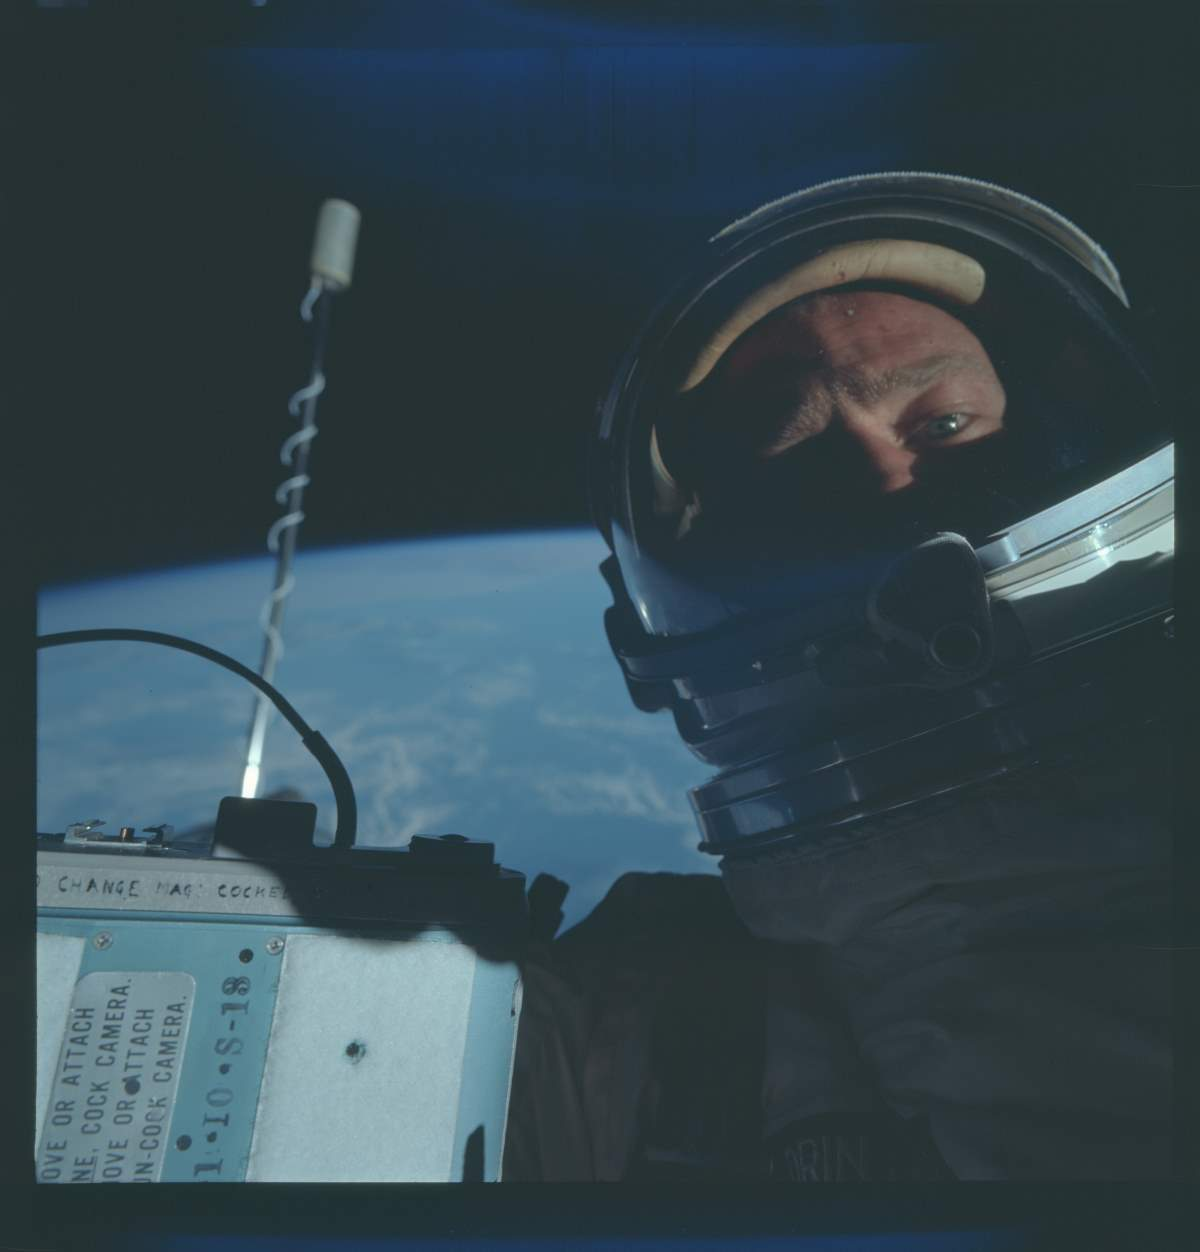 Buzz Aldrin's Selfie during the Gemini 12 Mission